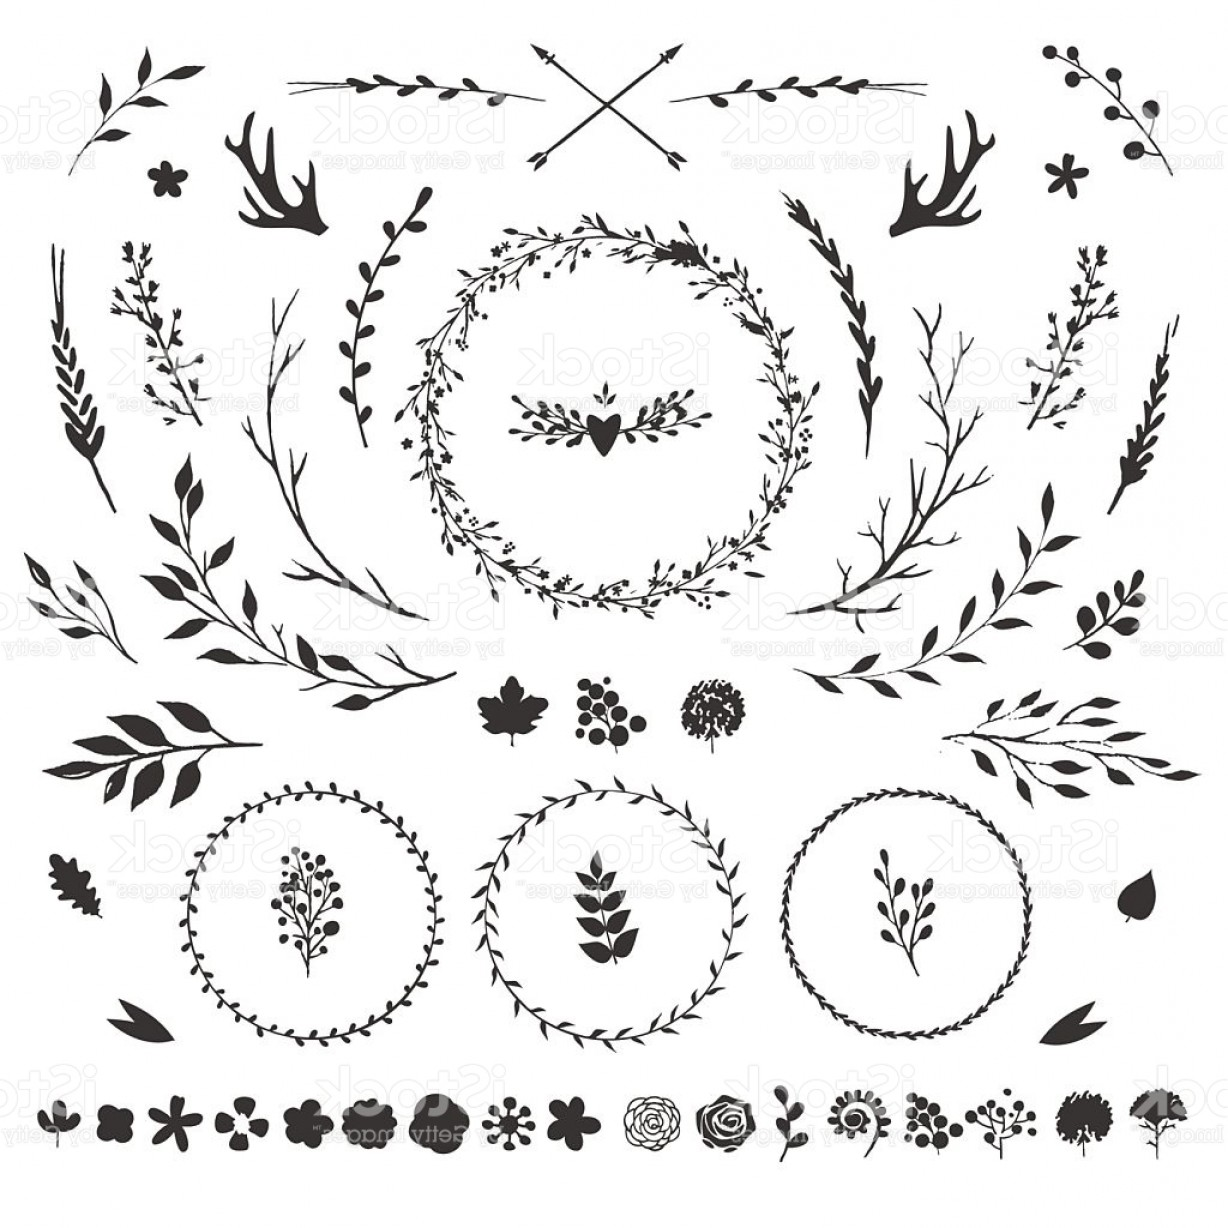 Flower Elements Vector: Floral Elements Isolated On White Gm